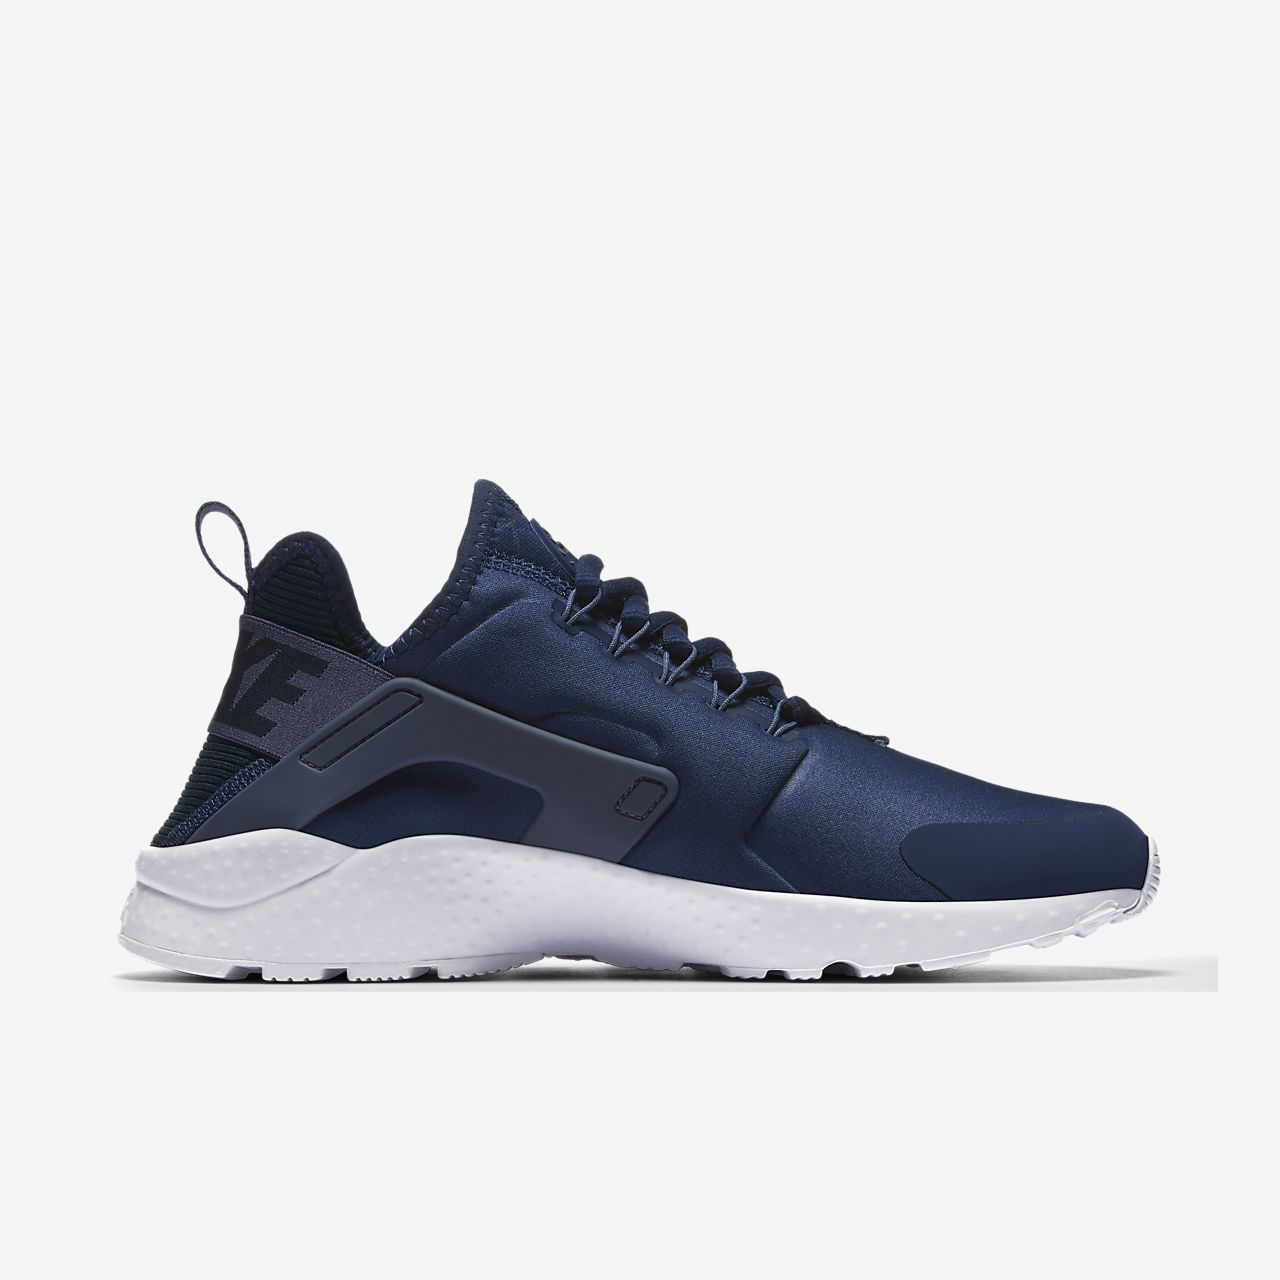 men's nike air huarache ultra se premium running shoes